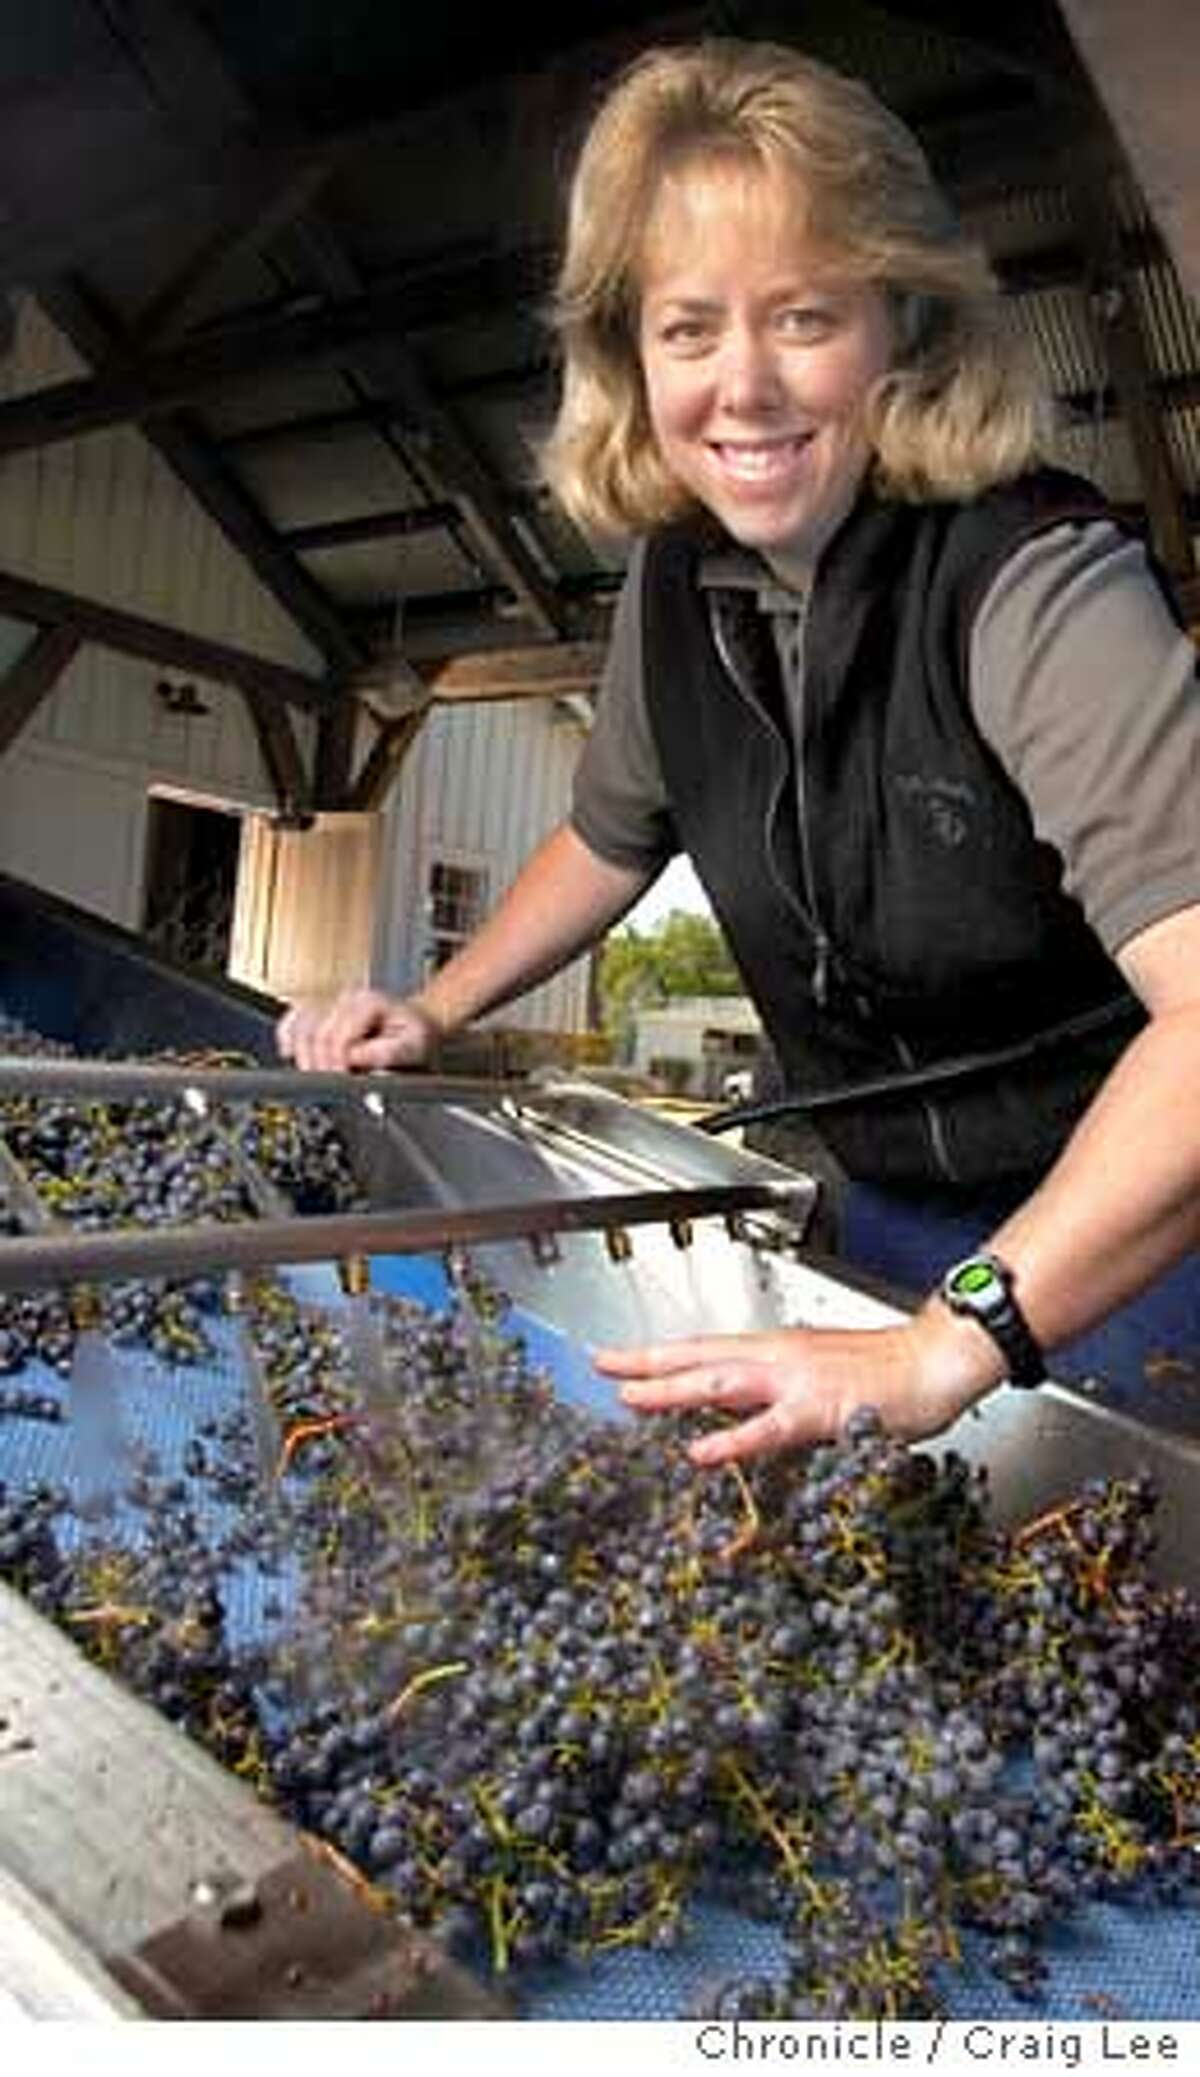 Winemakers to watch. Photo of Darice Spinelli, winemaker to watch. She is the winemaker at Nickel and Nickel in Oakville. Photo of Darice Spinelli processing the grapes for washing and crushing. These grapes are for their Stelling Vineyard Cabernet Sauvignon. Event on 10/20/03 in Oakville. CRAIG LEE / The Chronicle